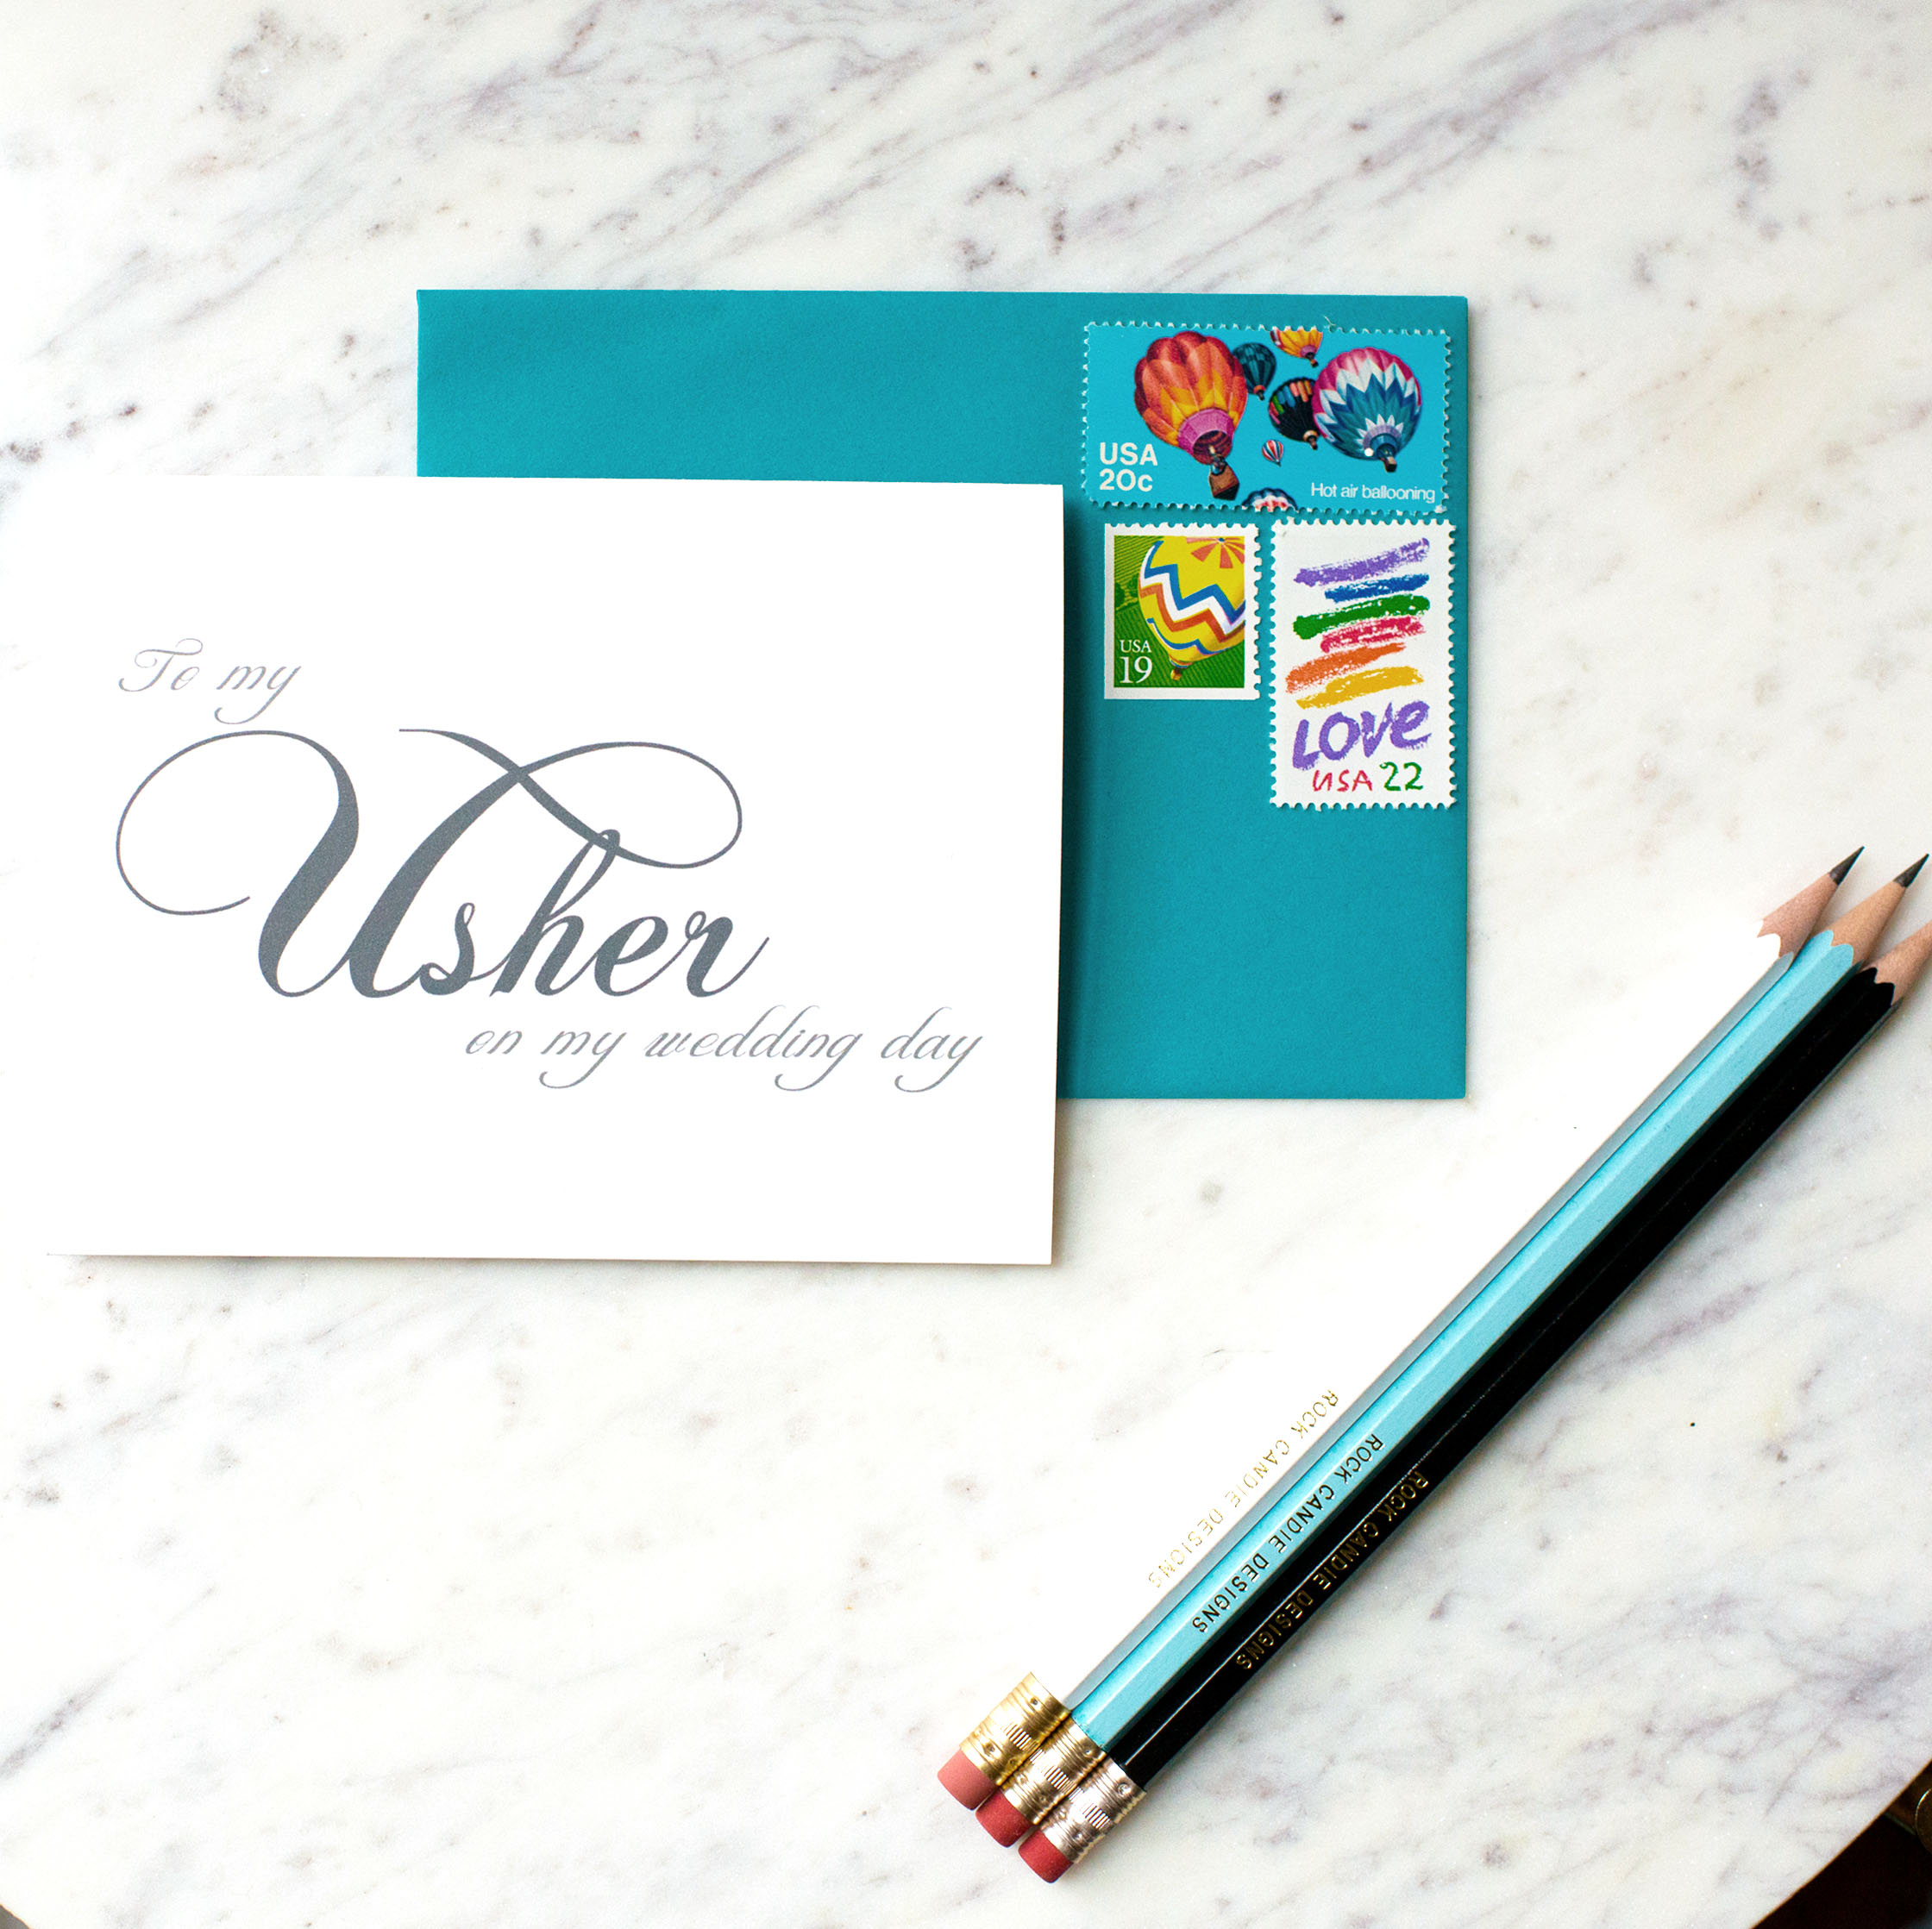 To My Usher On My Wedding Day Card